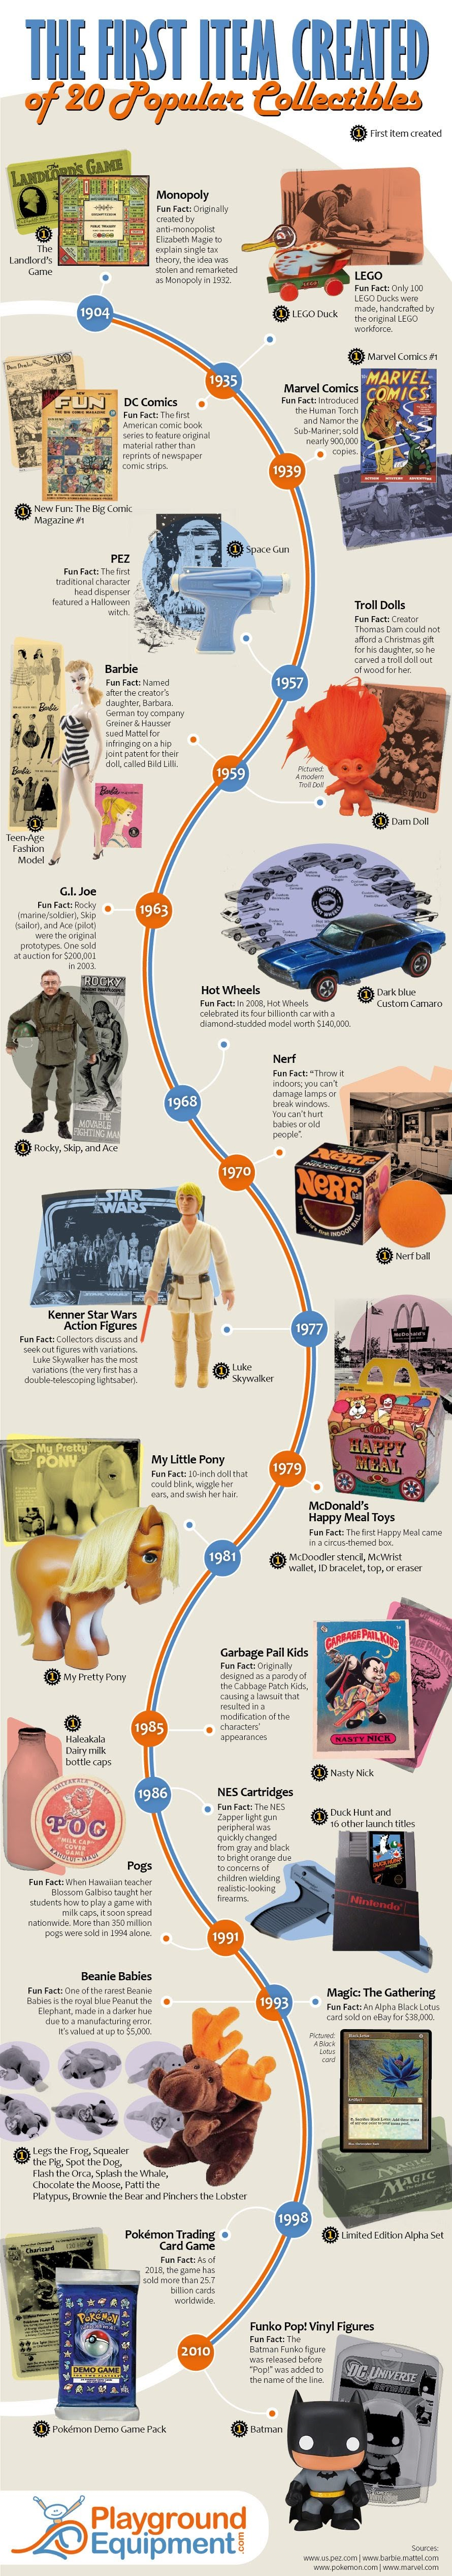 The First Item Created of 20 Popular Collectibles #infographic